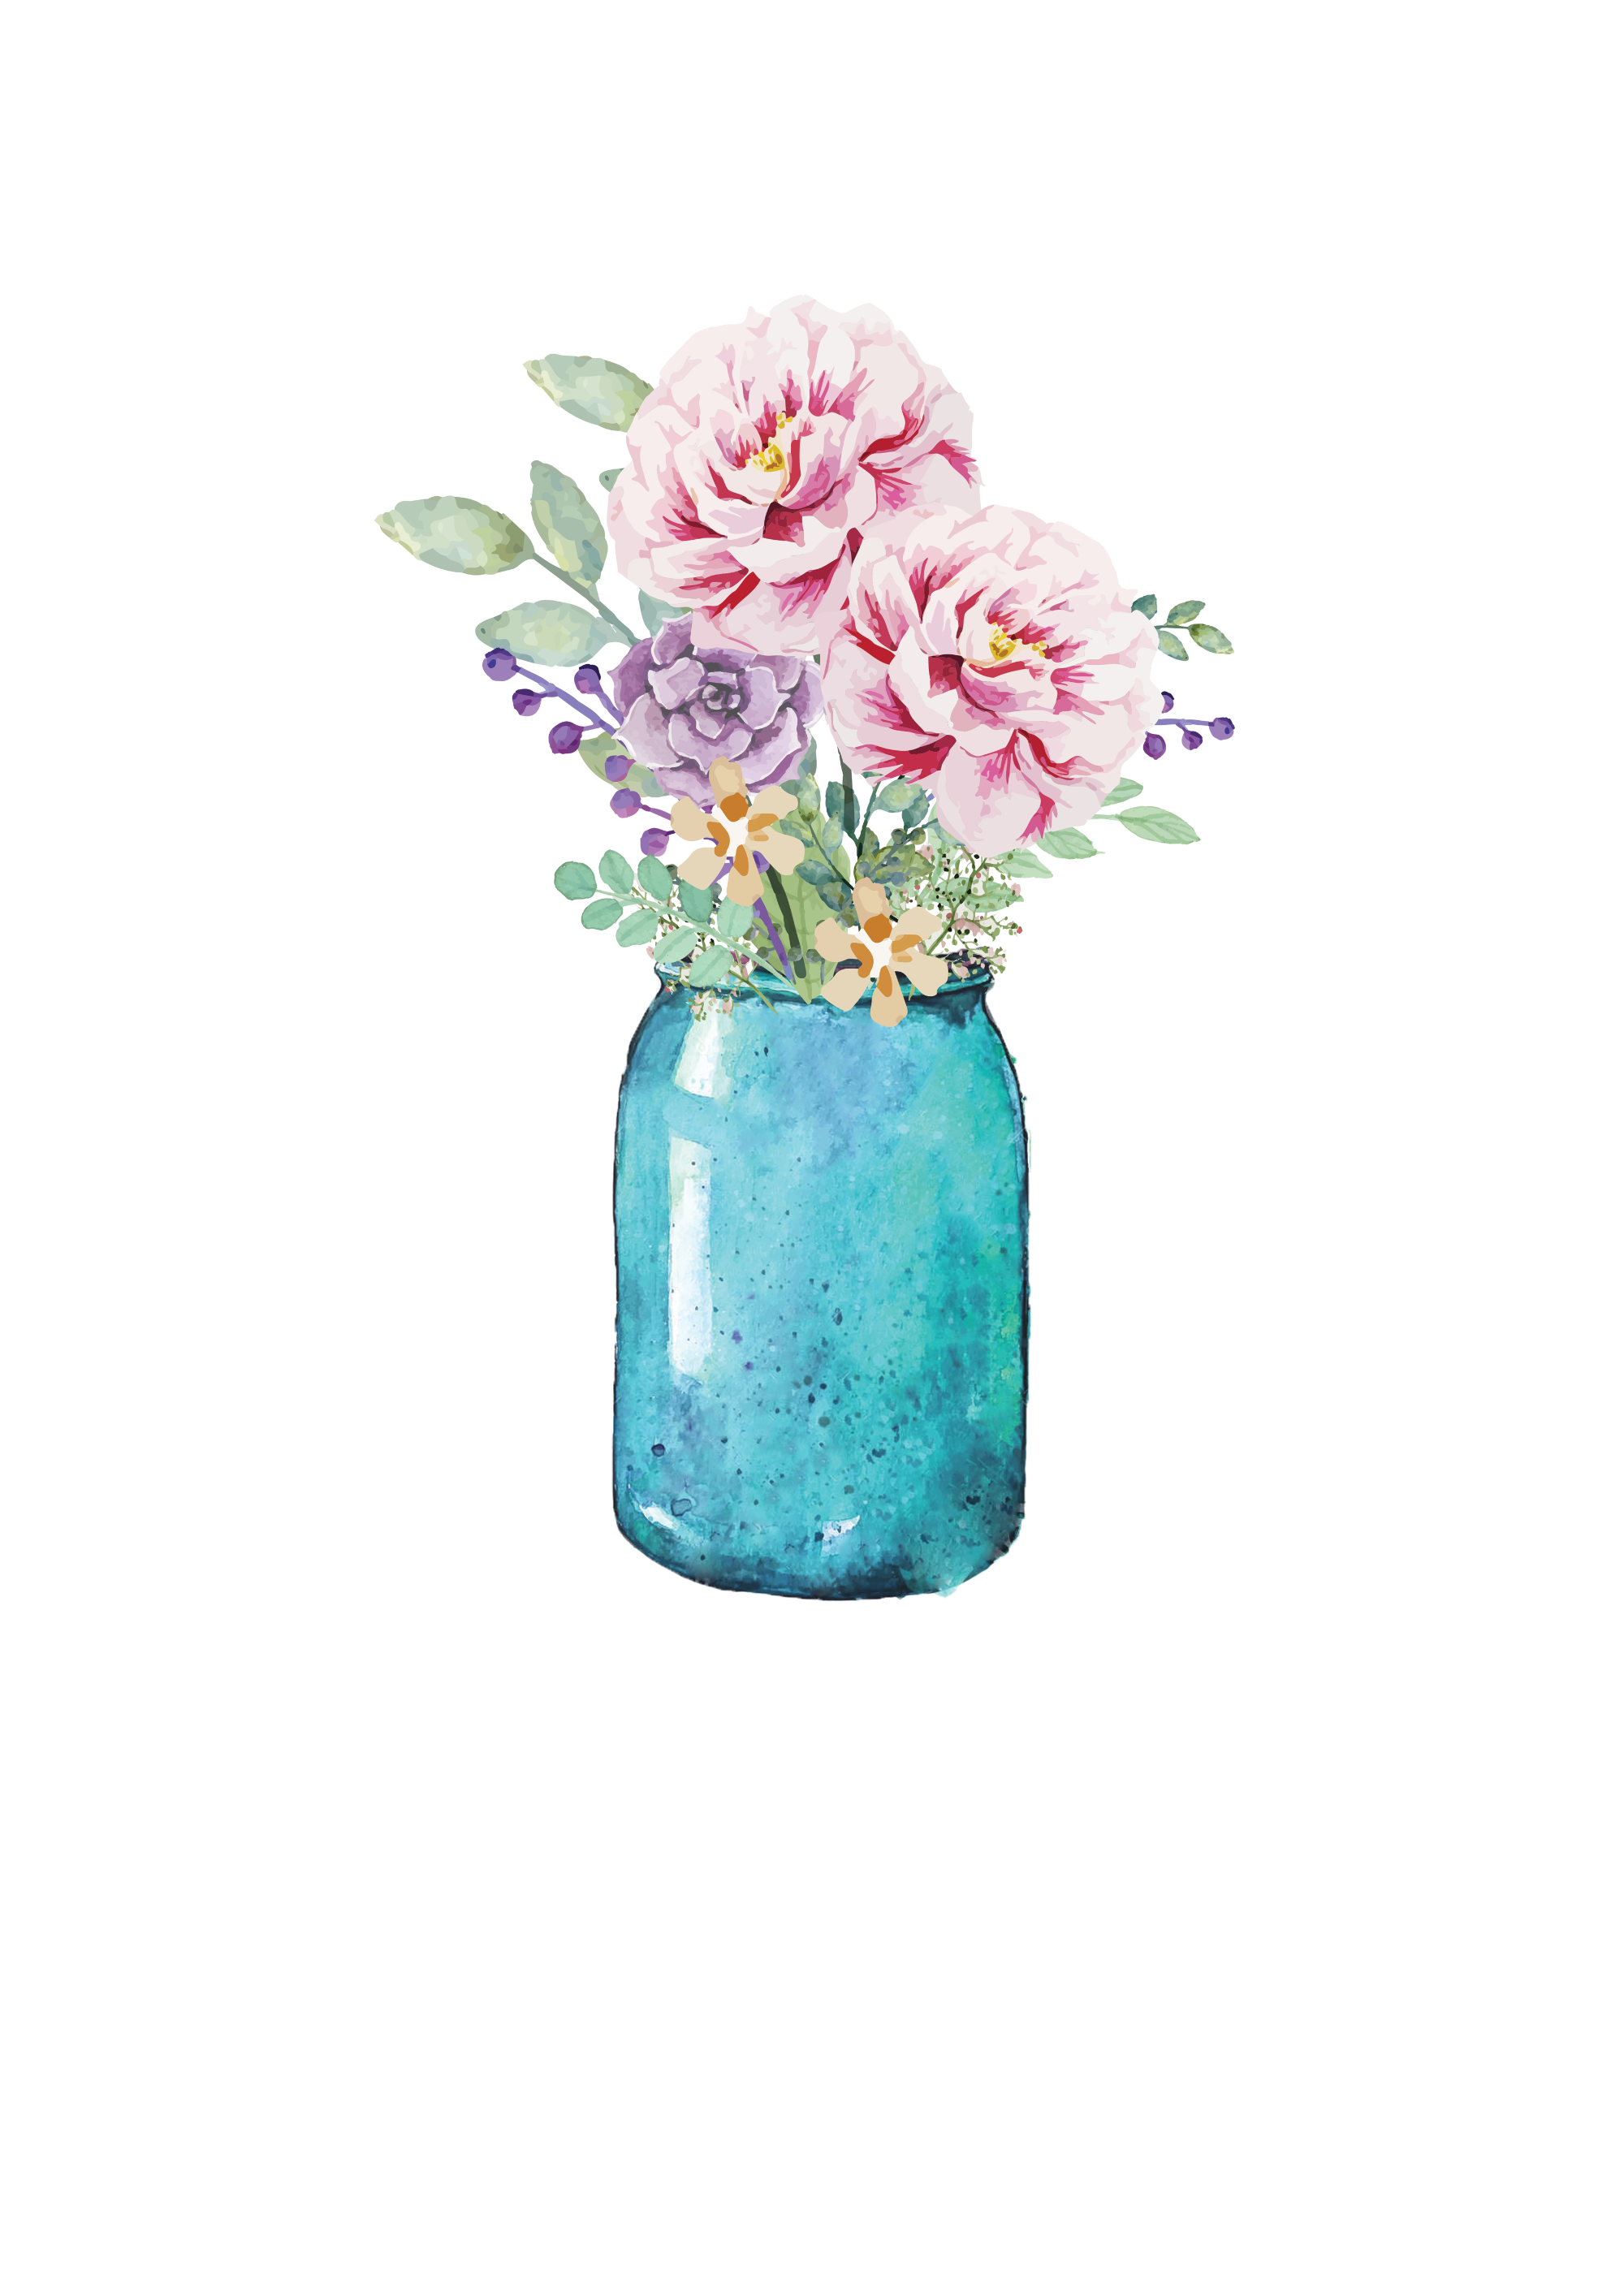 Lauren Baxter Flowers in a Mason Jar Watercolor